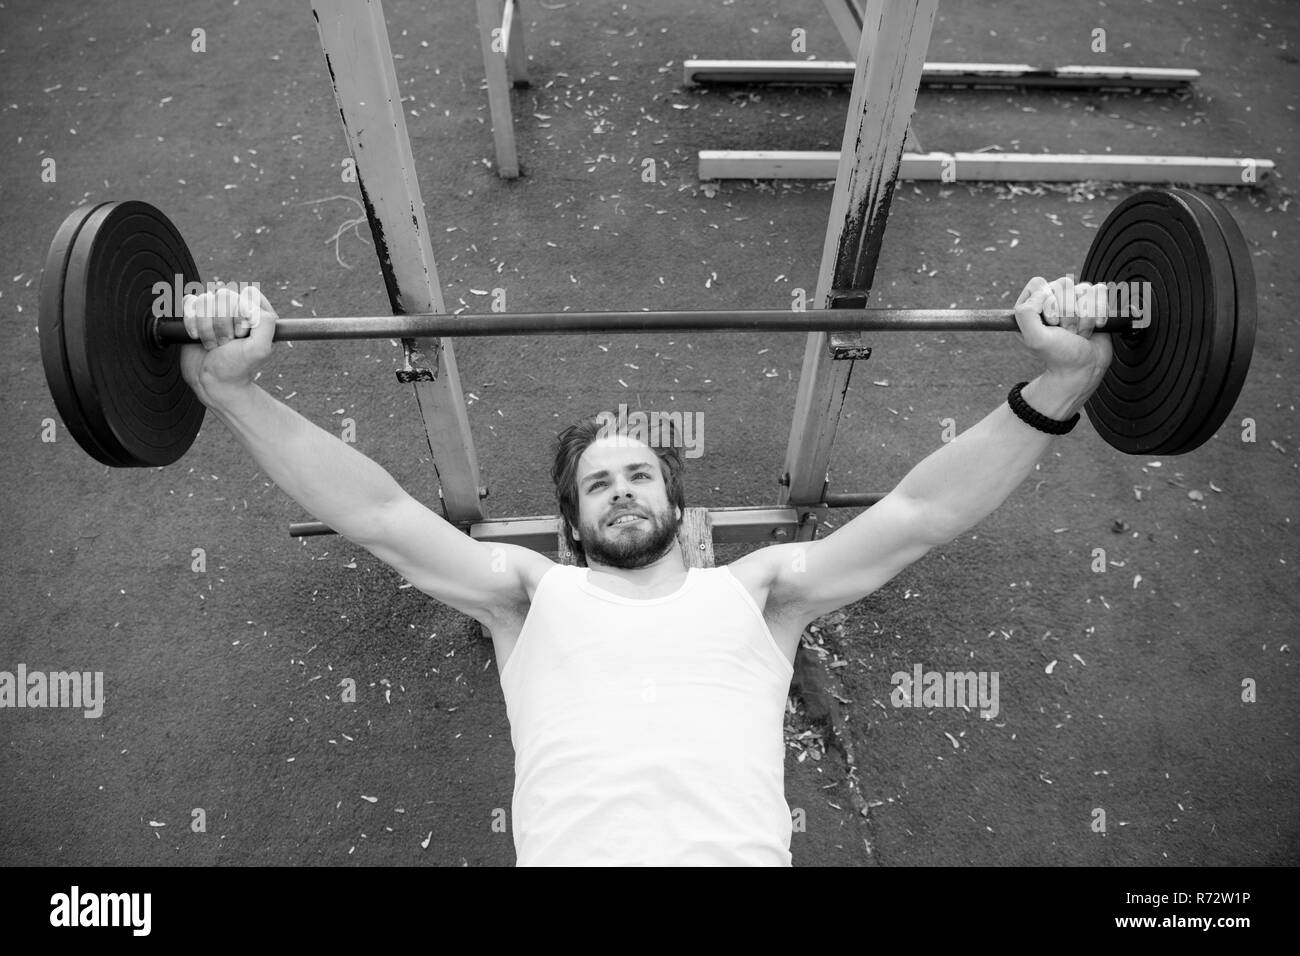 Weightlifting, bodybuilding, fitness, sport. Bodybuilder lift barbell on stadium. Man with athletic torso, strong arms training with weight. Power, energy, strength concept - Stock Image